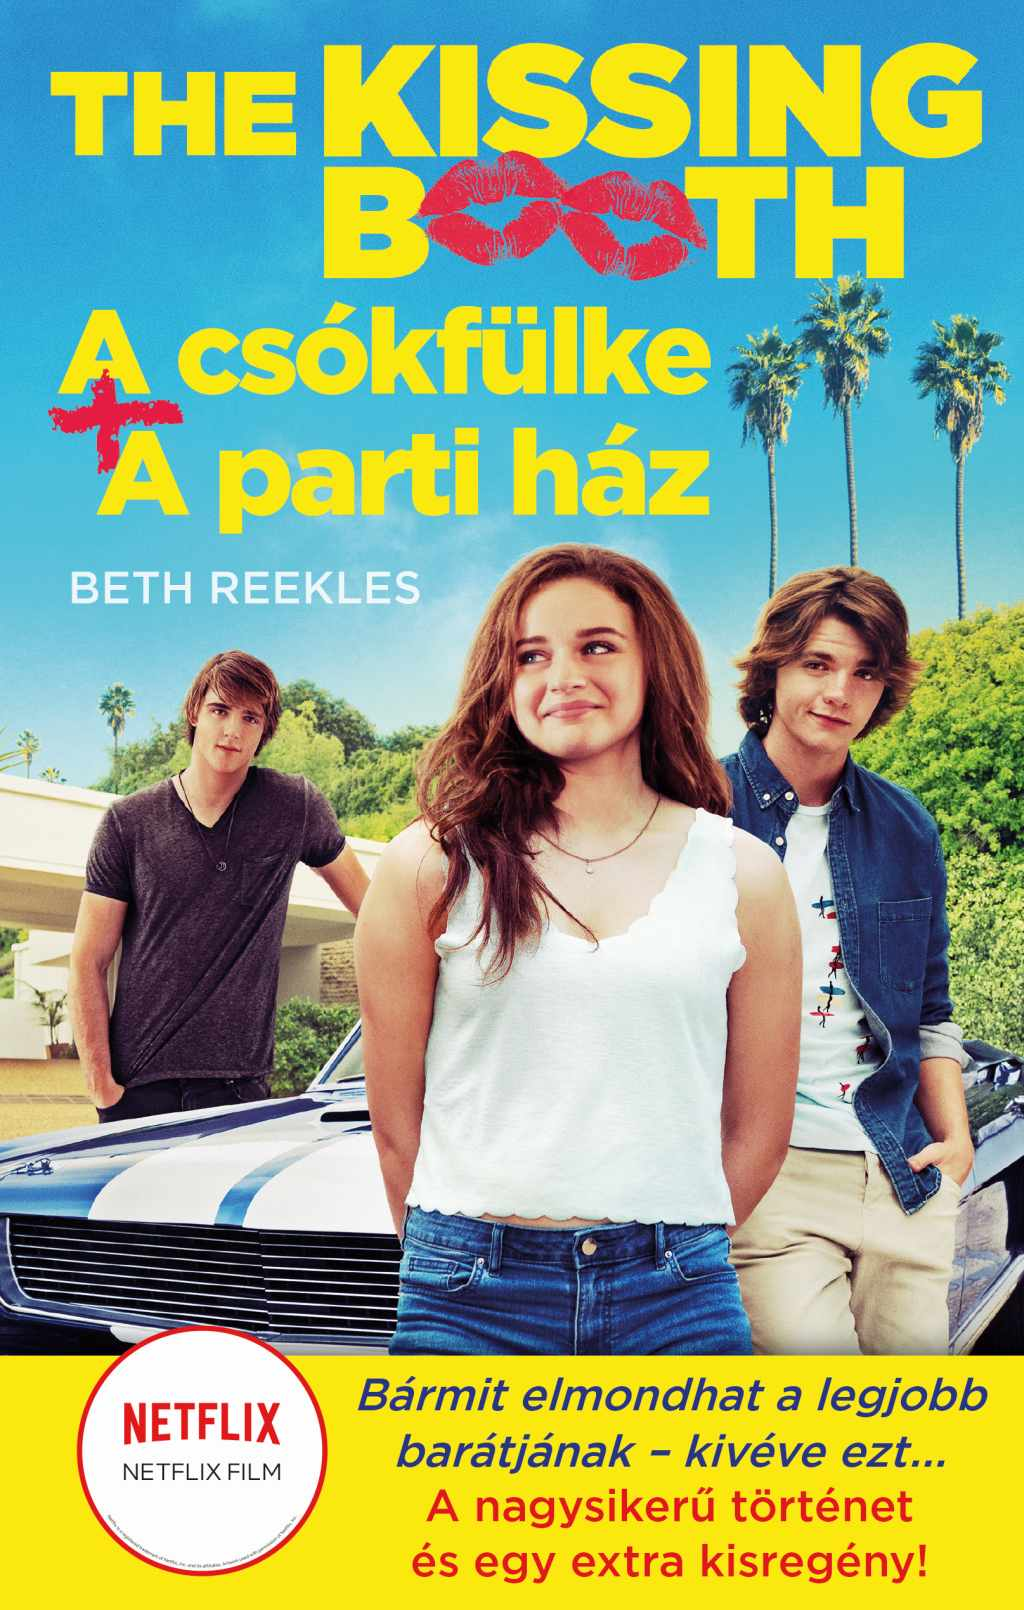 The Kissing Booth: A csókfülke, A parti ház